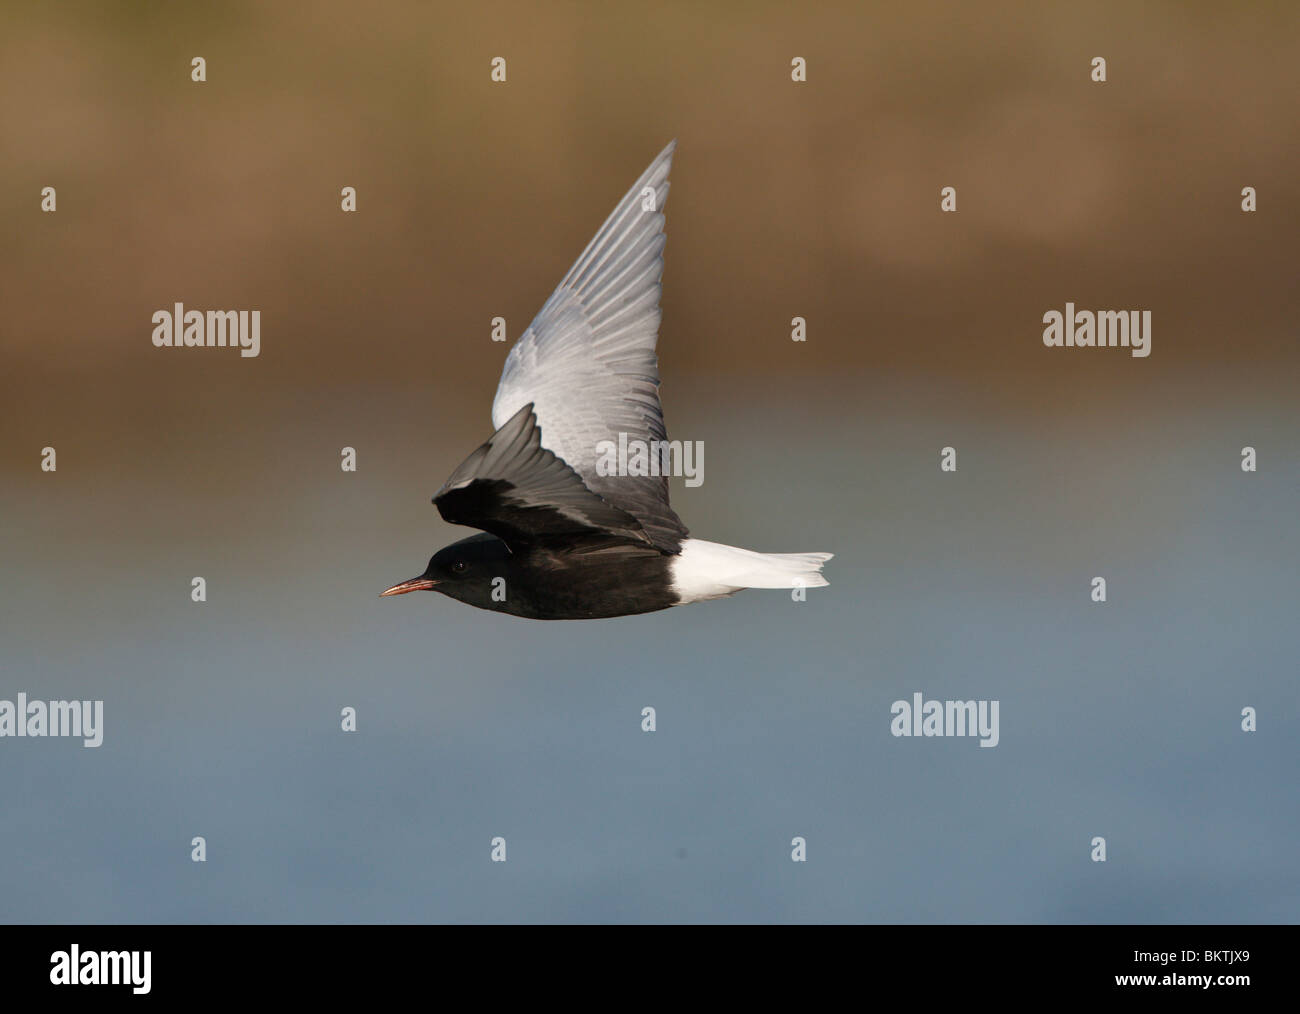 Witvleugelstern vliegend en foeragerend boven water. White-winged Tern flying and foraging above water Stock Photo